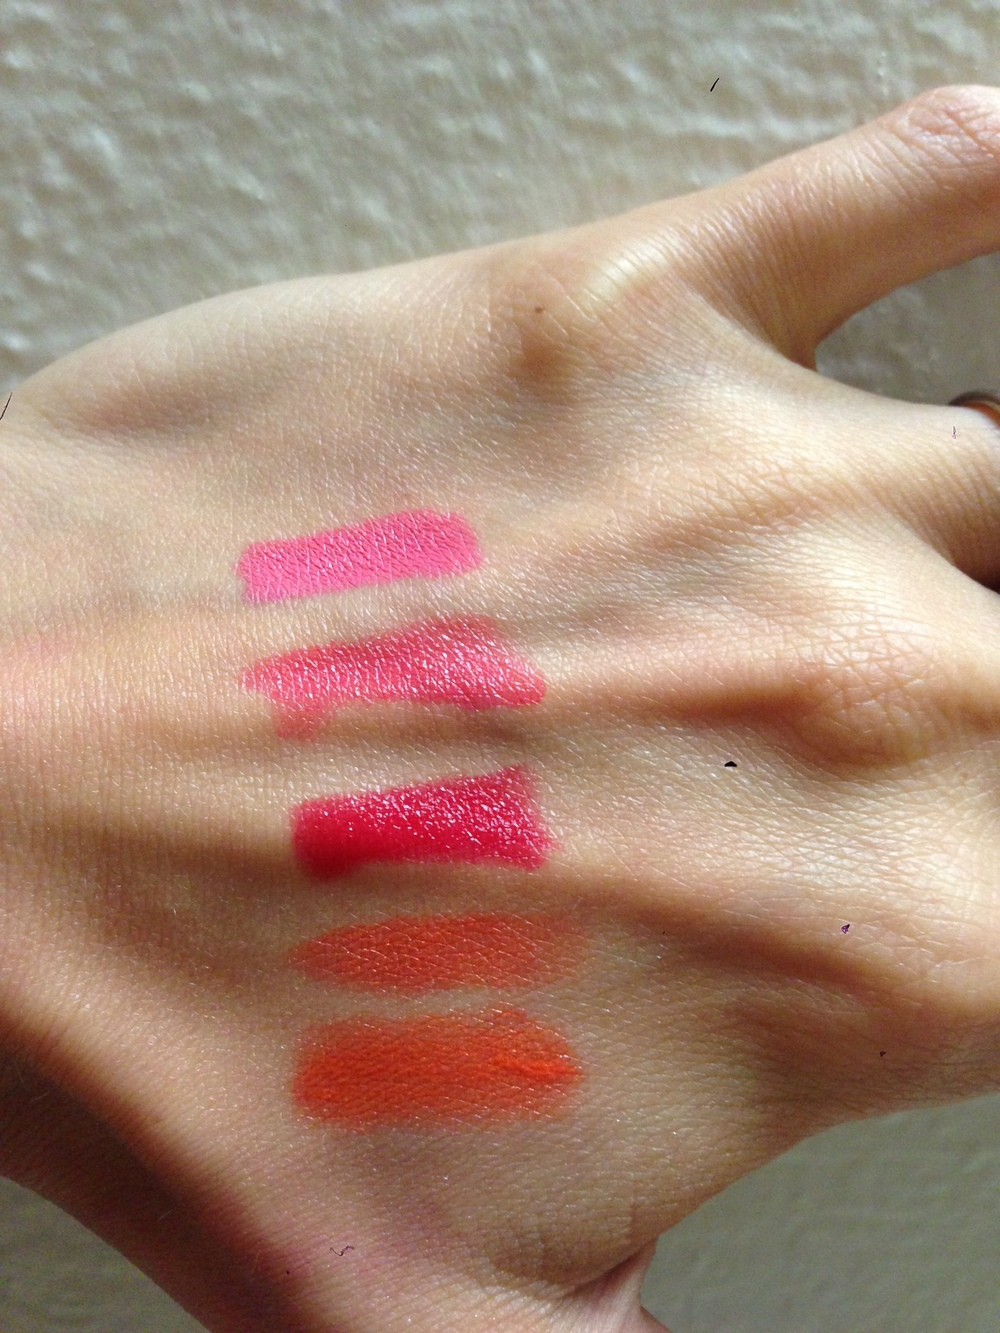 From top to bottom:  MAC satin VIVA GLAM NICKI, Maybelline COLORsensational in 870 Shocking Coral, Maybelline COLORsensational in 895 On Fire Red, Revlon Super Lustrous Lipstick in 677 Siren, Revlon Just Bitten Kissable Balm Stain in 040 Rendezvous